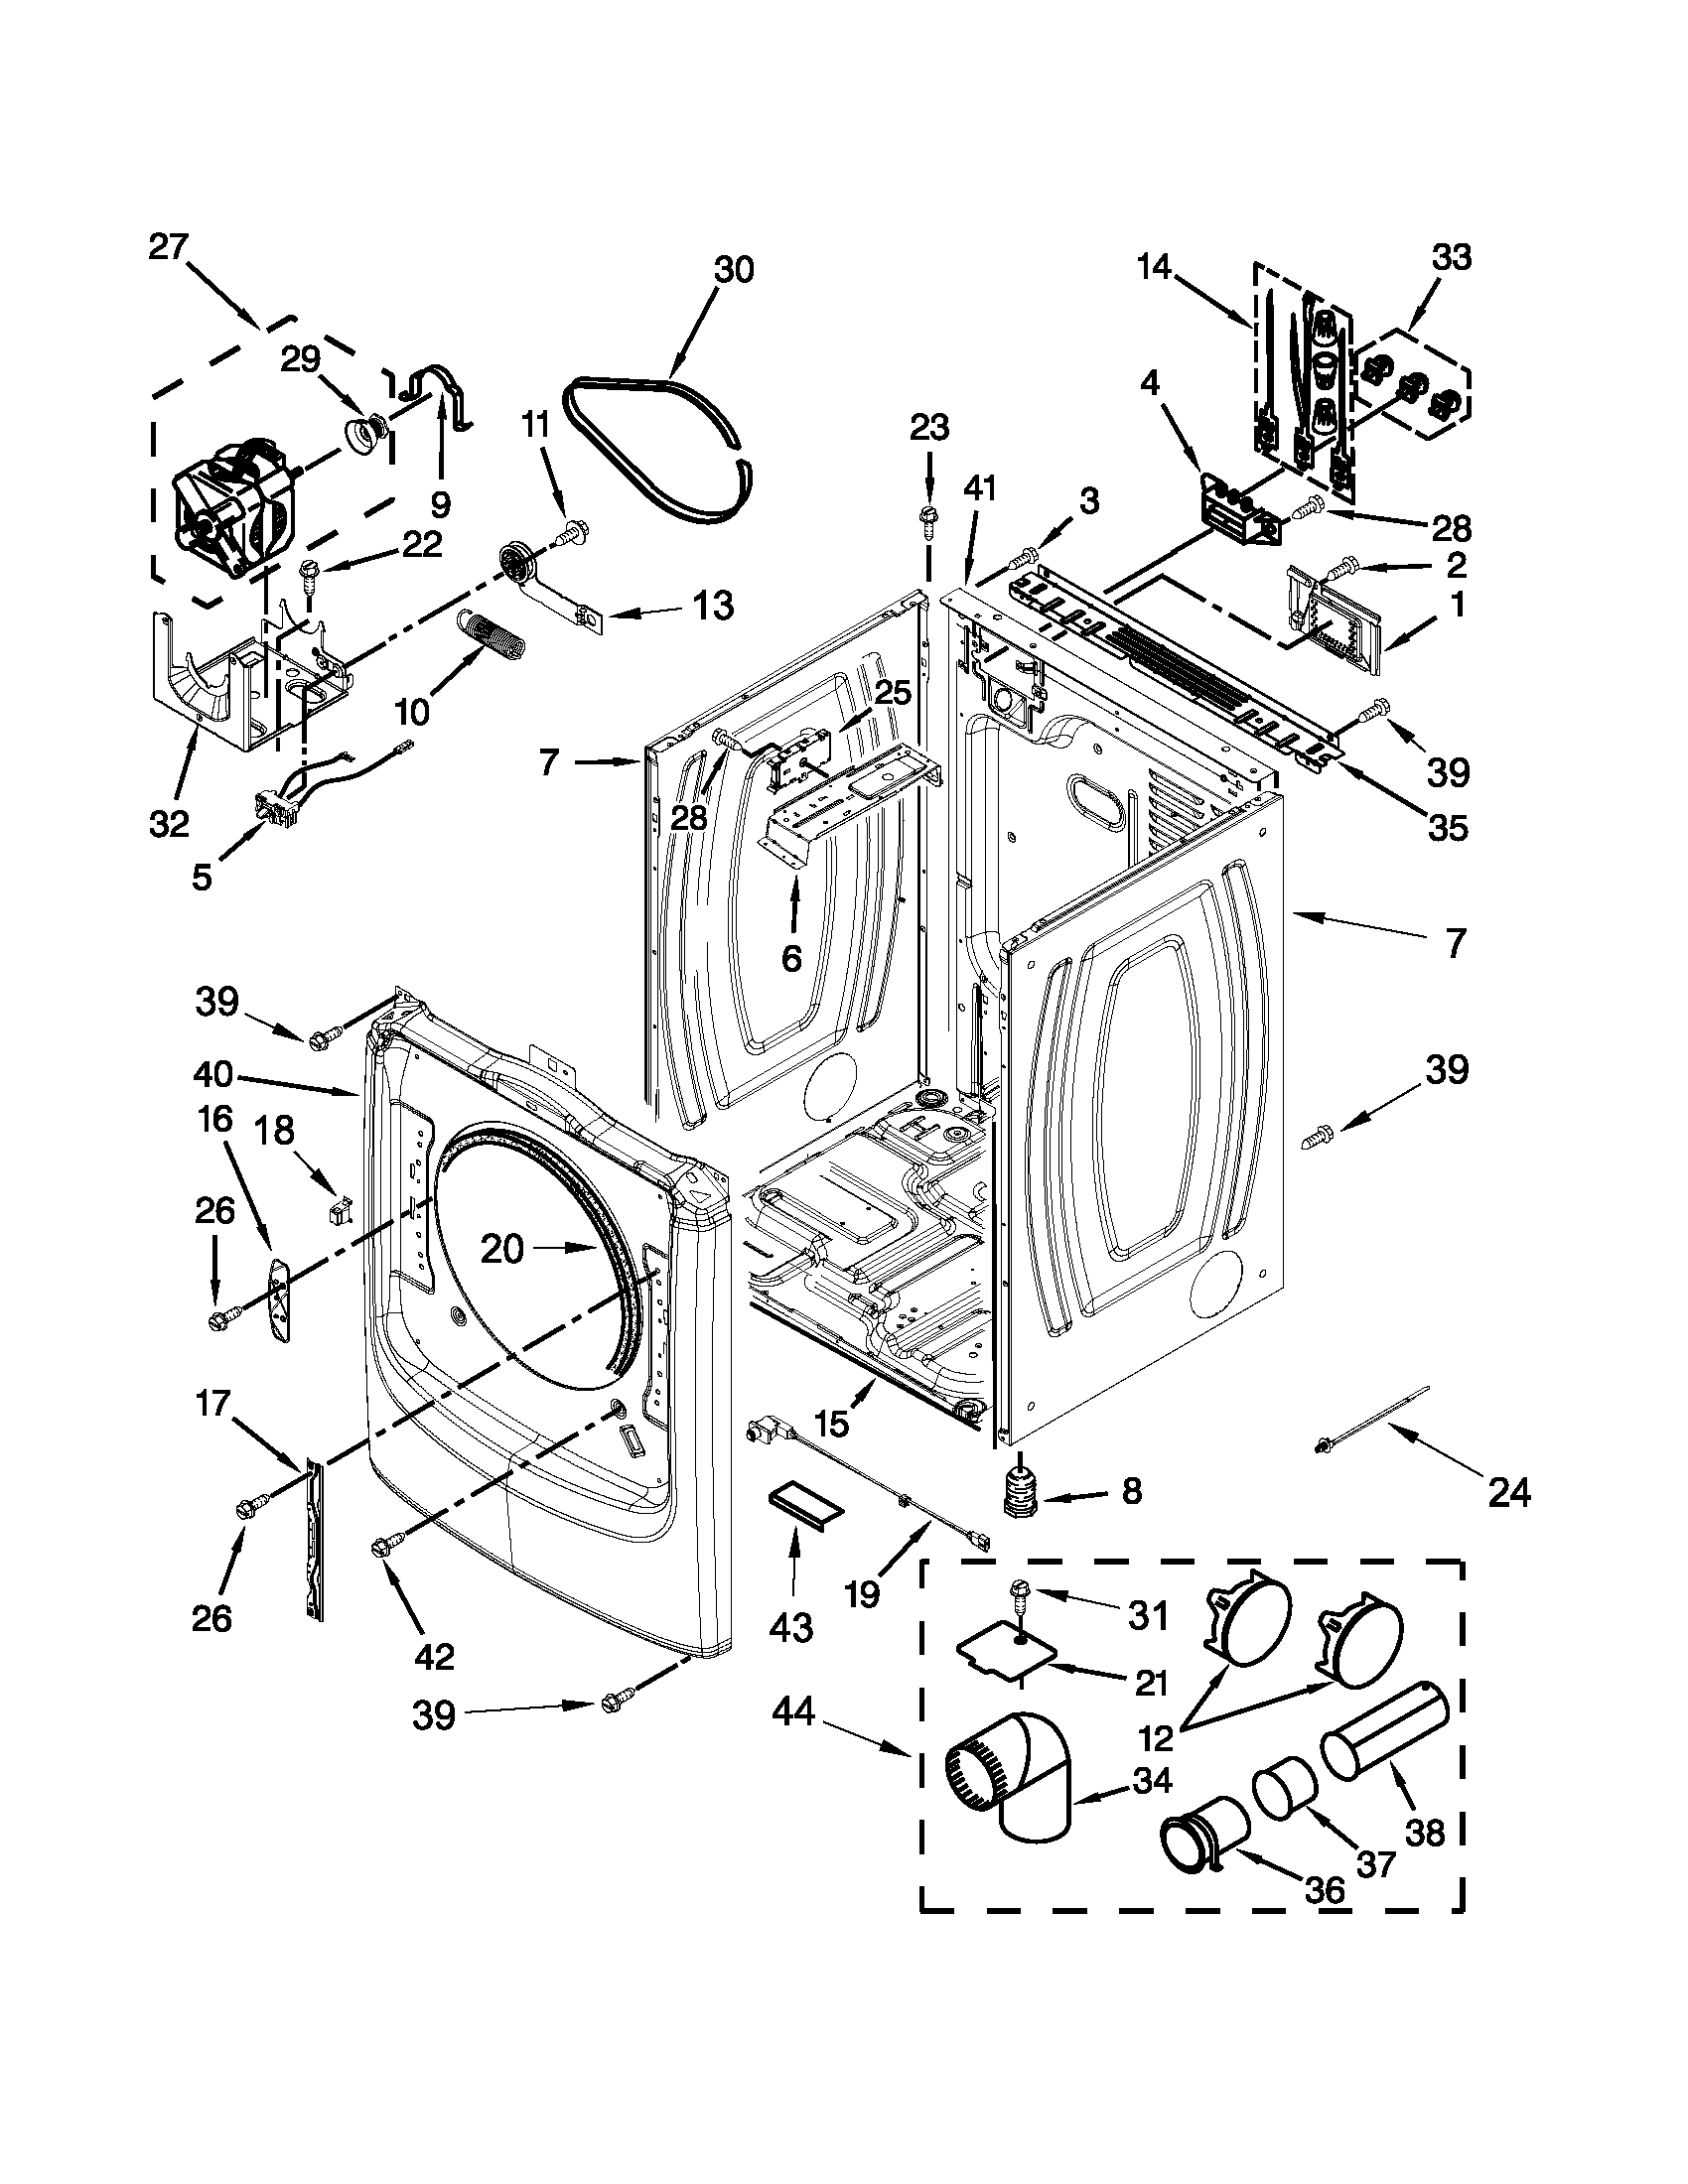 CABINET PARTS Diagram & Parts List for Model med6000xw2